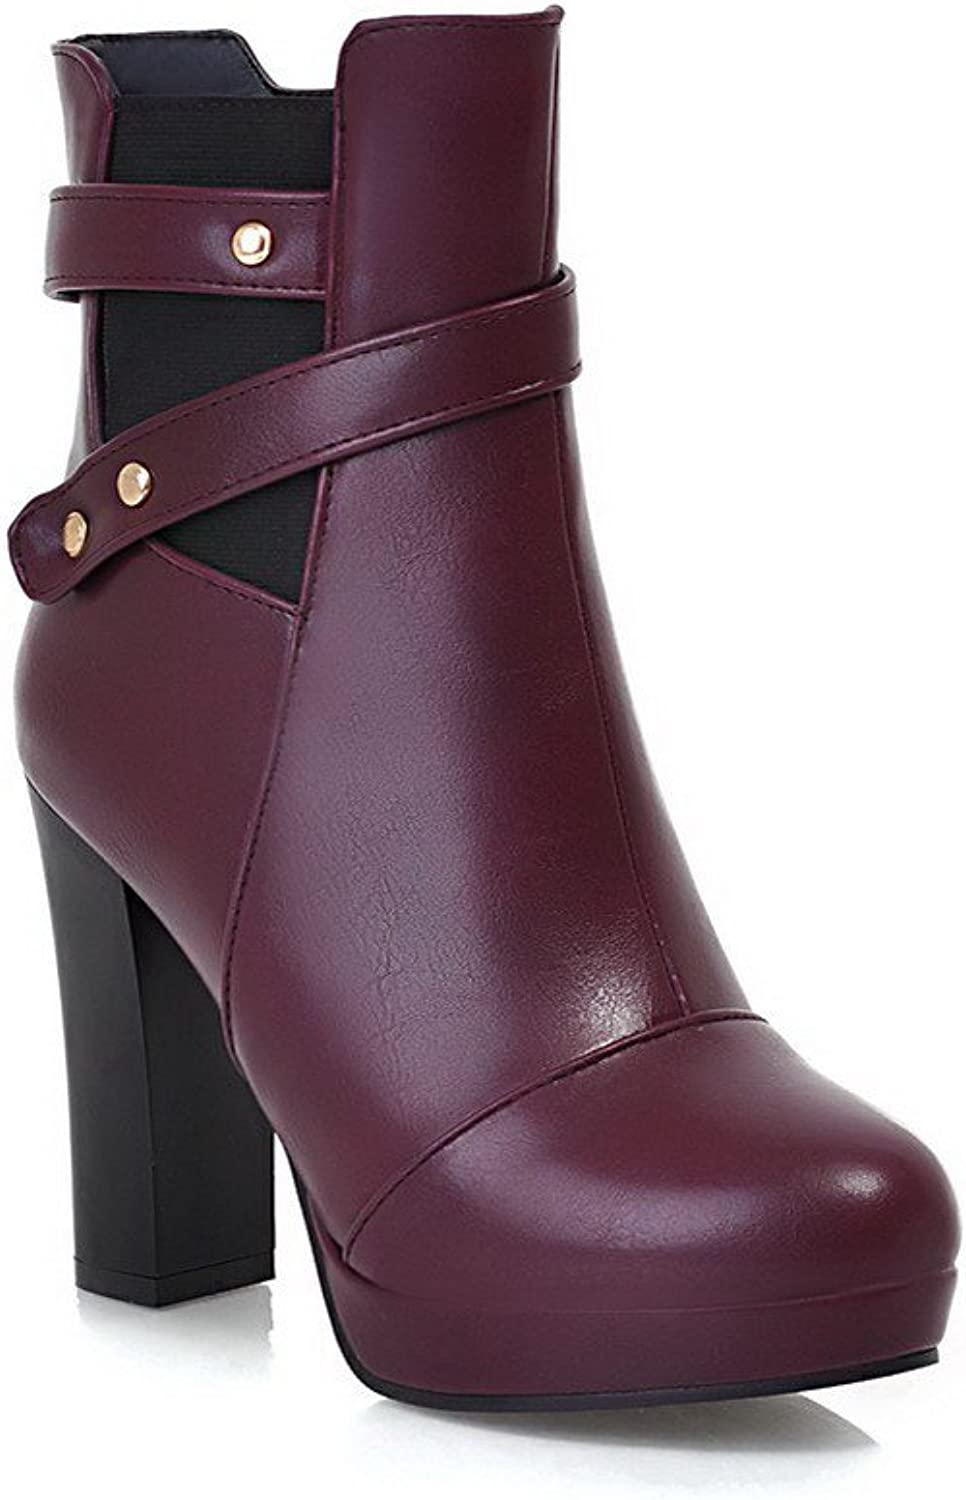 WeiPoot Womens Round Closed Toe High Heels PU Solid Boots with Belt Buckle